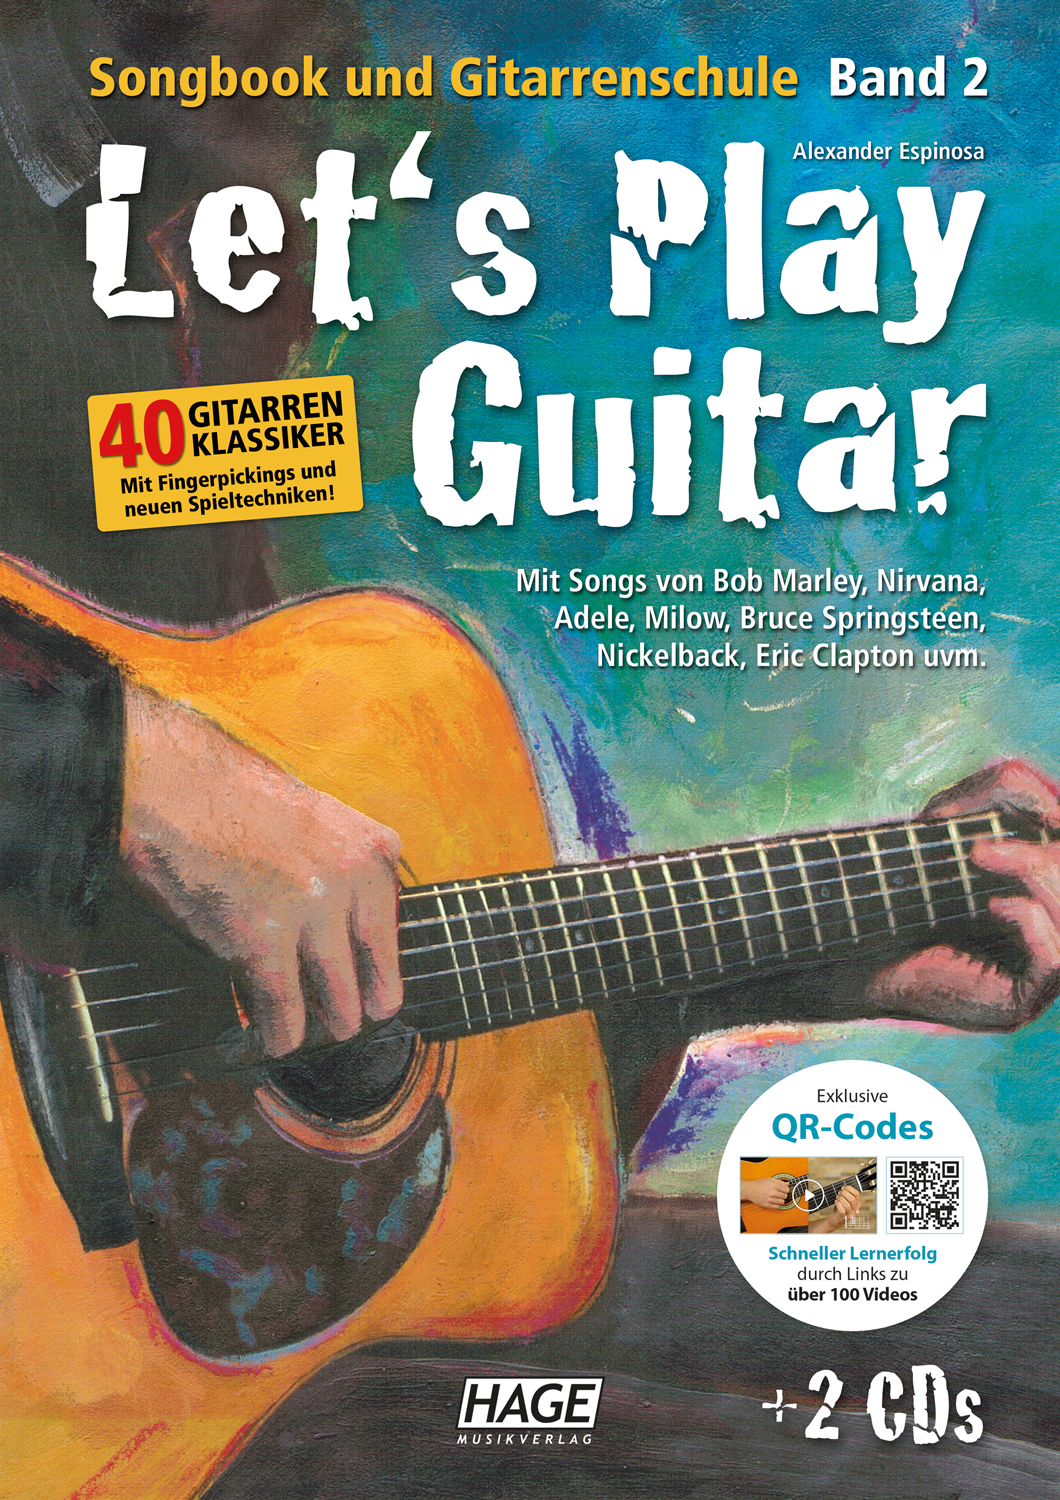 Let's Play Guitar Volume 2 (with 2 CDs und QR codes)